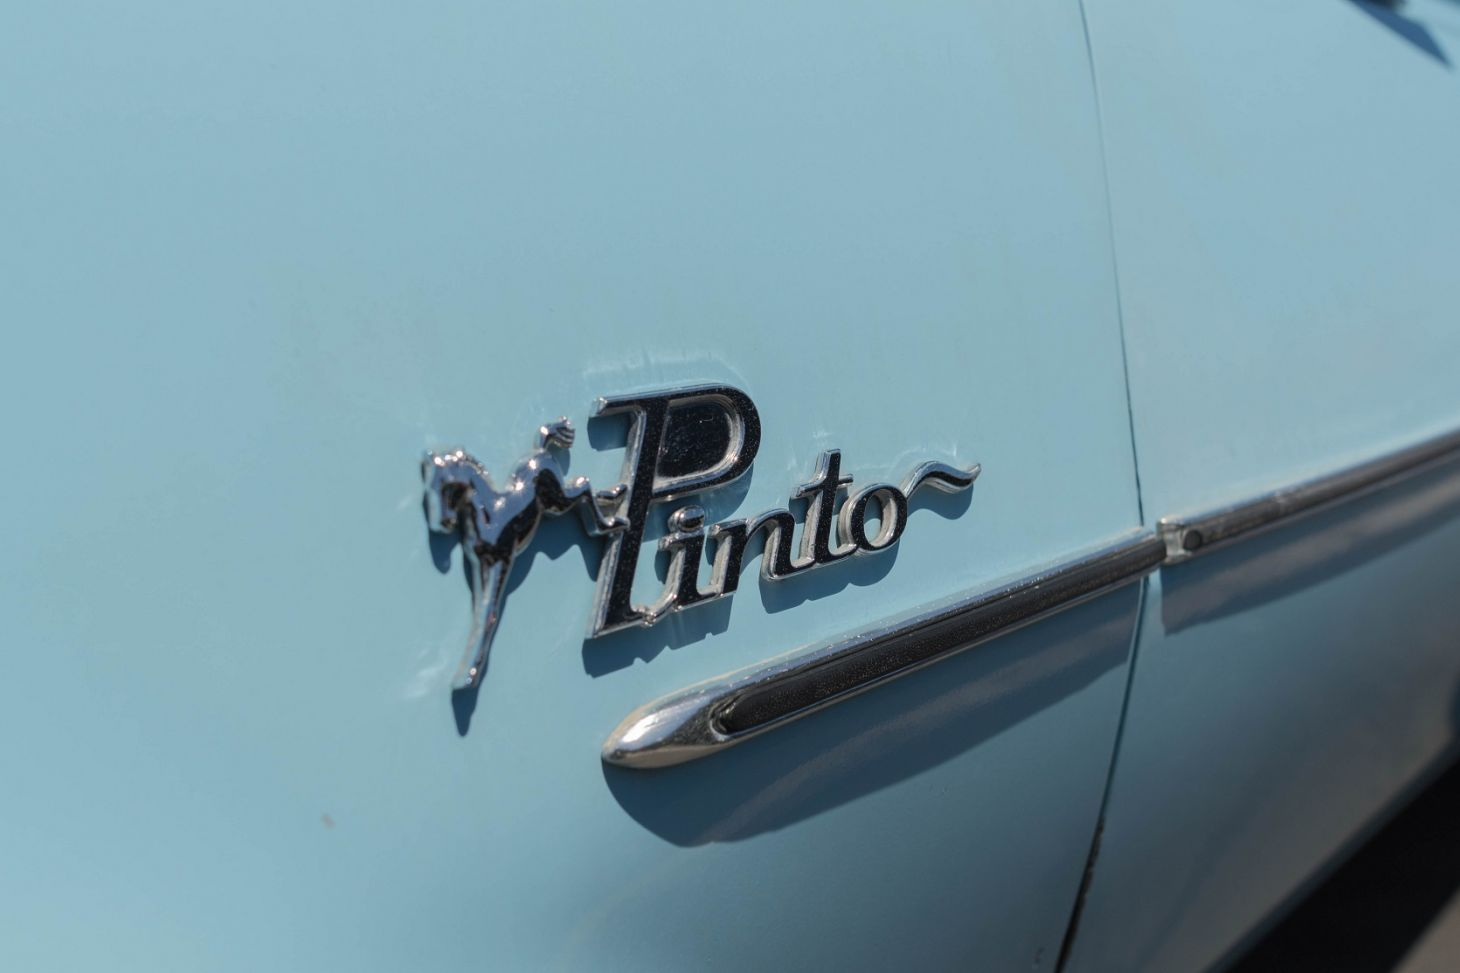 ford pinto emblema foto Shutterstock